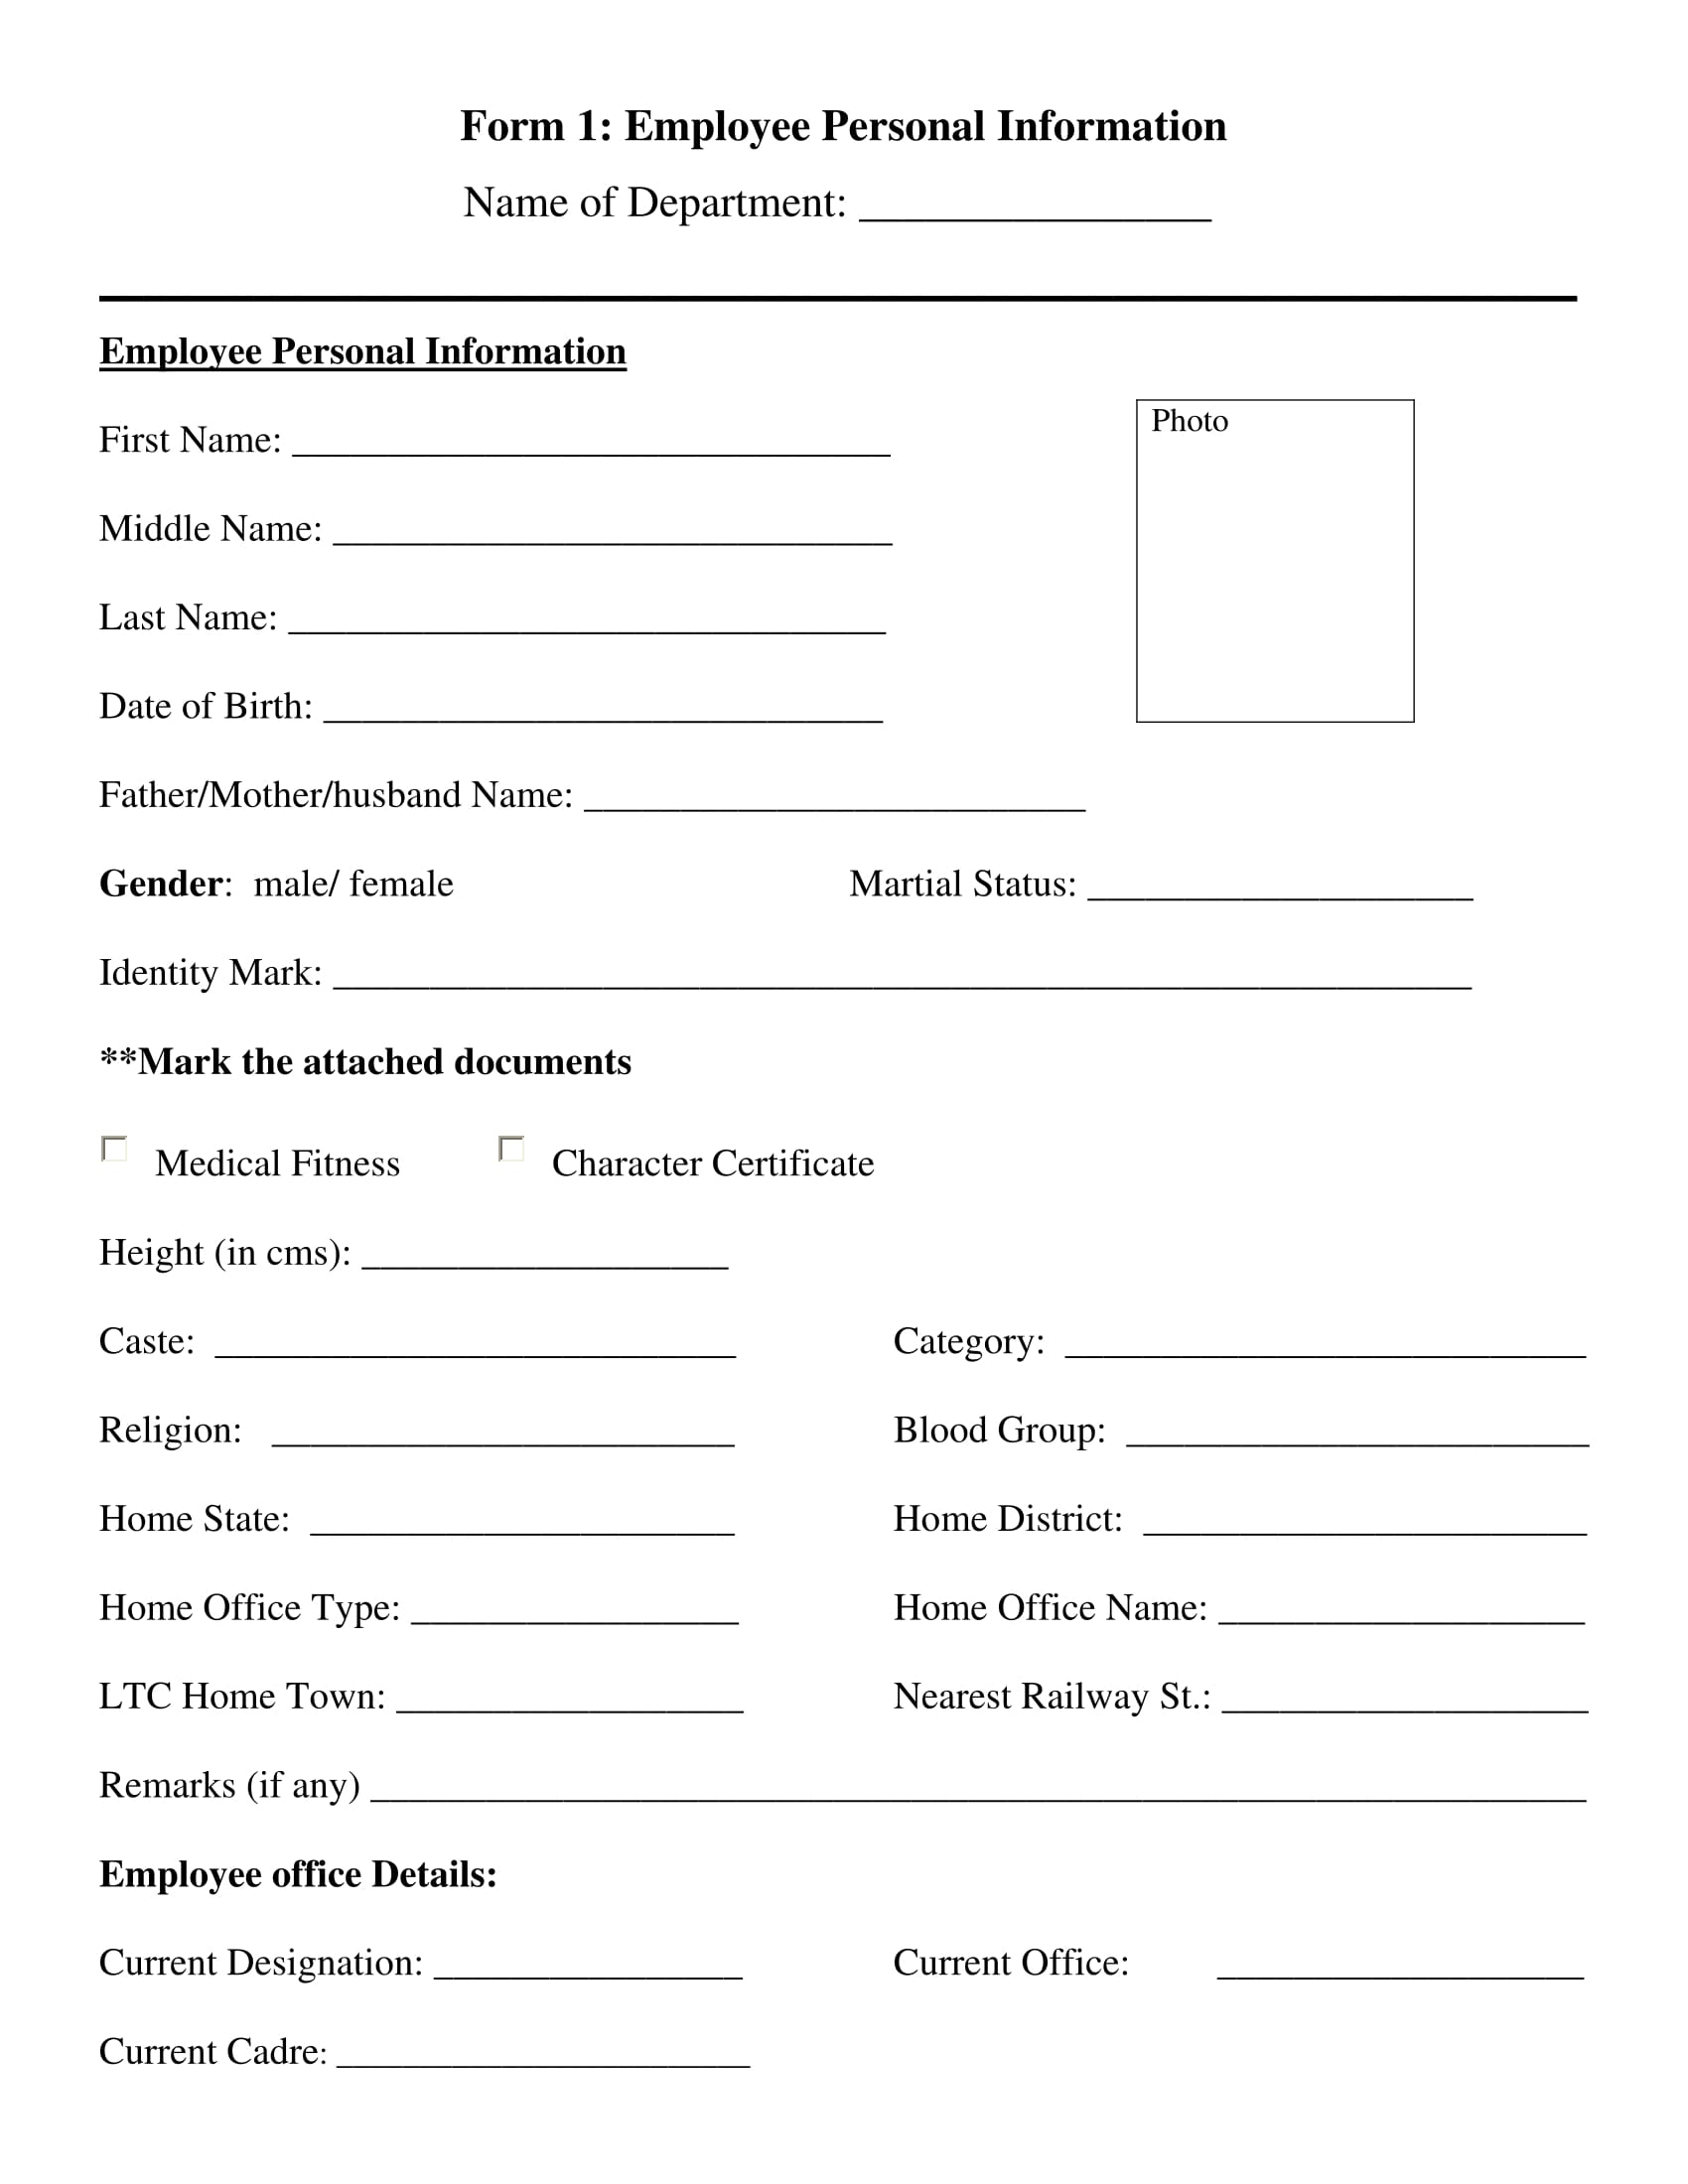 sample employee personal information form 01